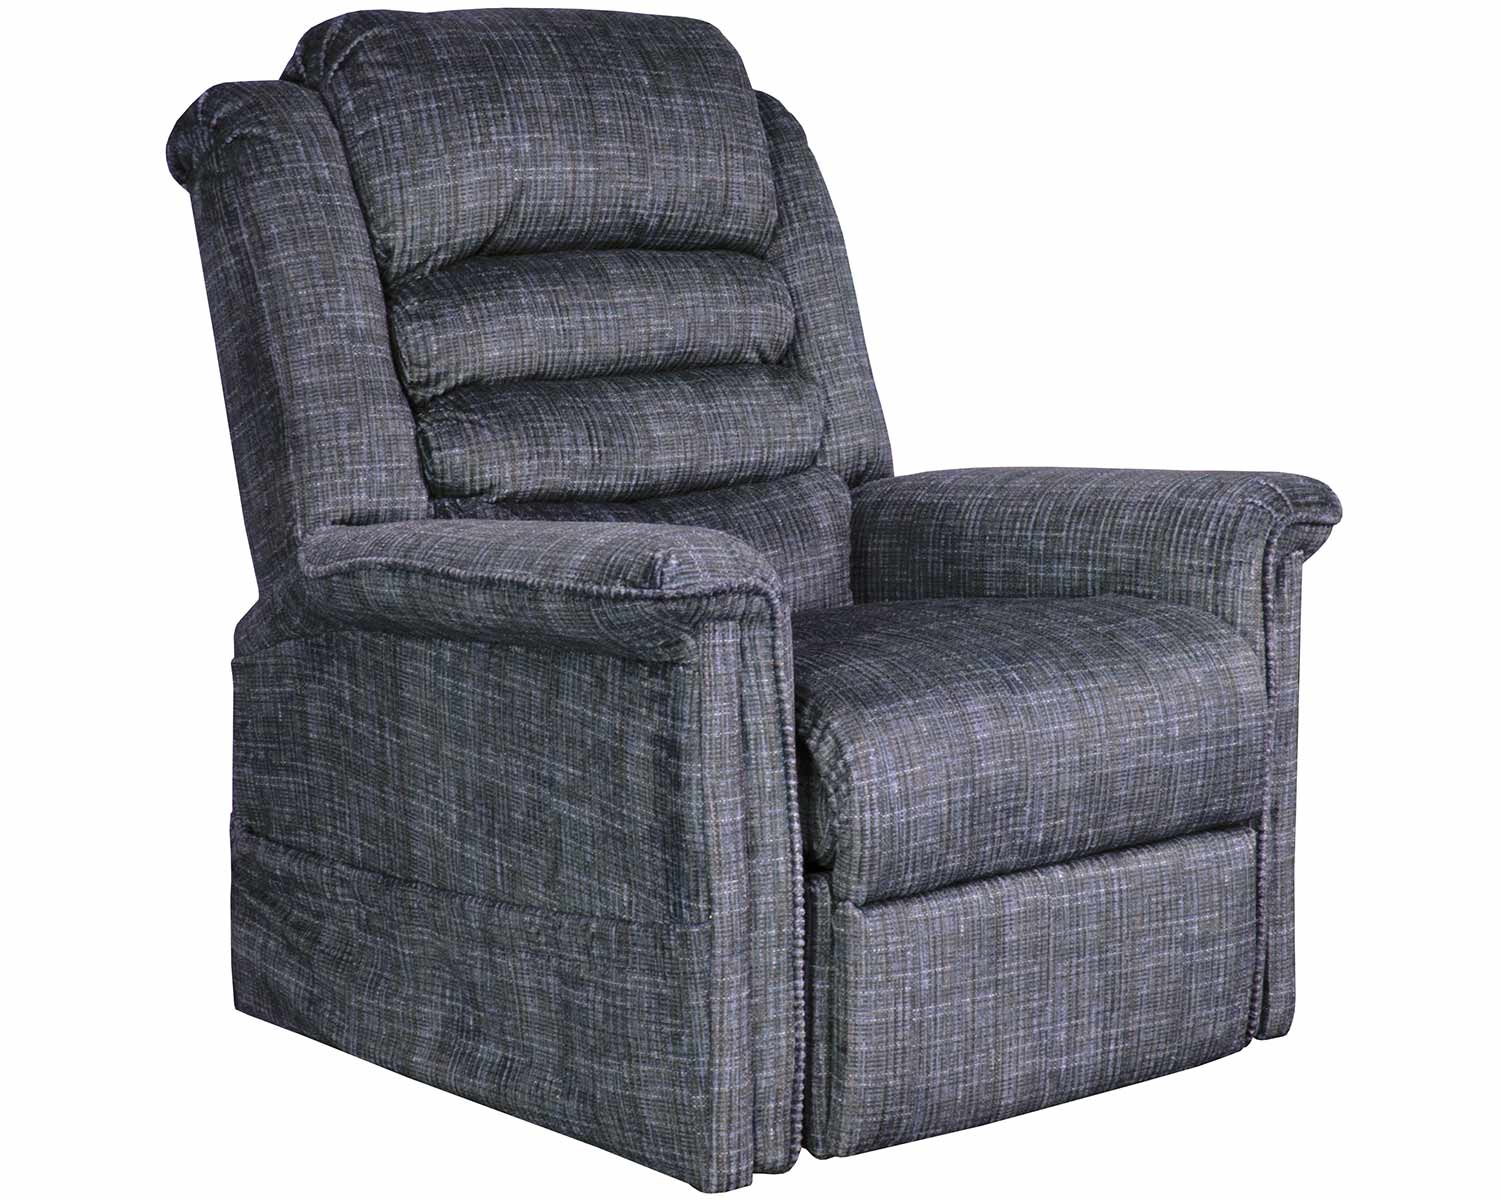 CatNapper Soother Power Lift Recliner Chair - Smoke